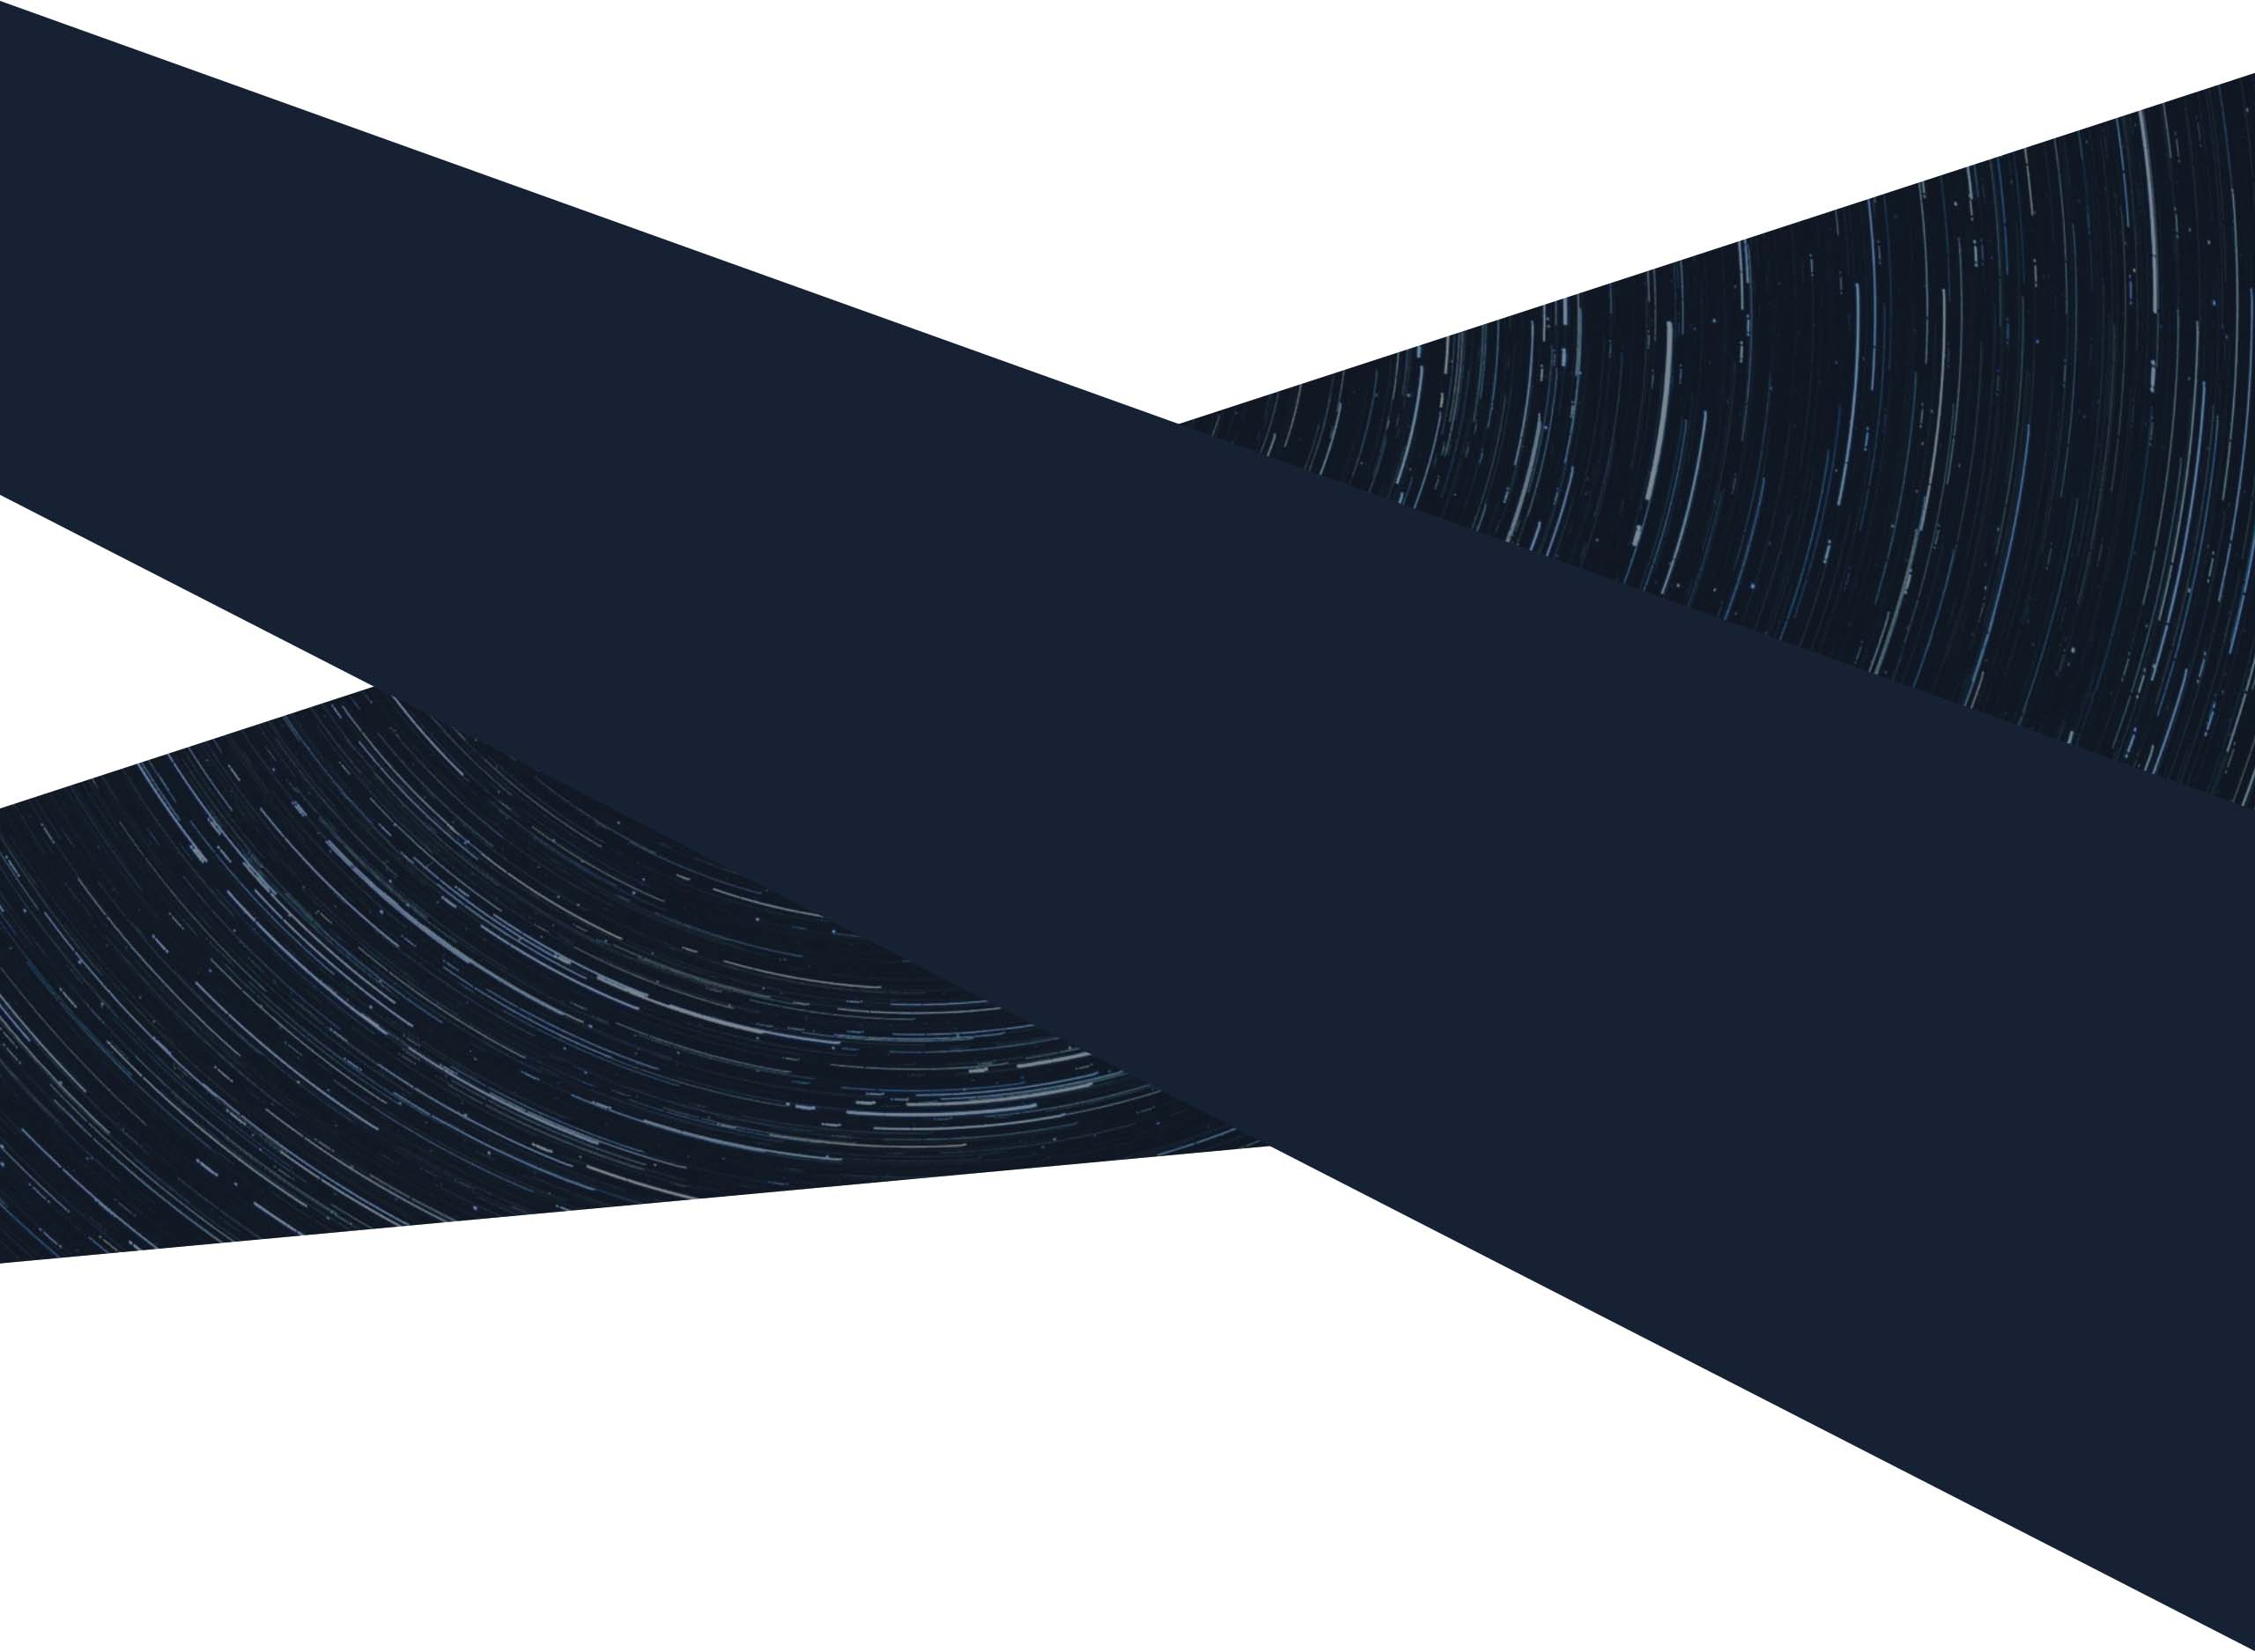 Background Shape in dark blue and with texture.